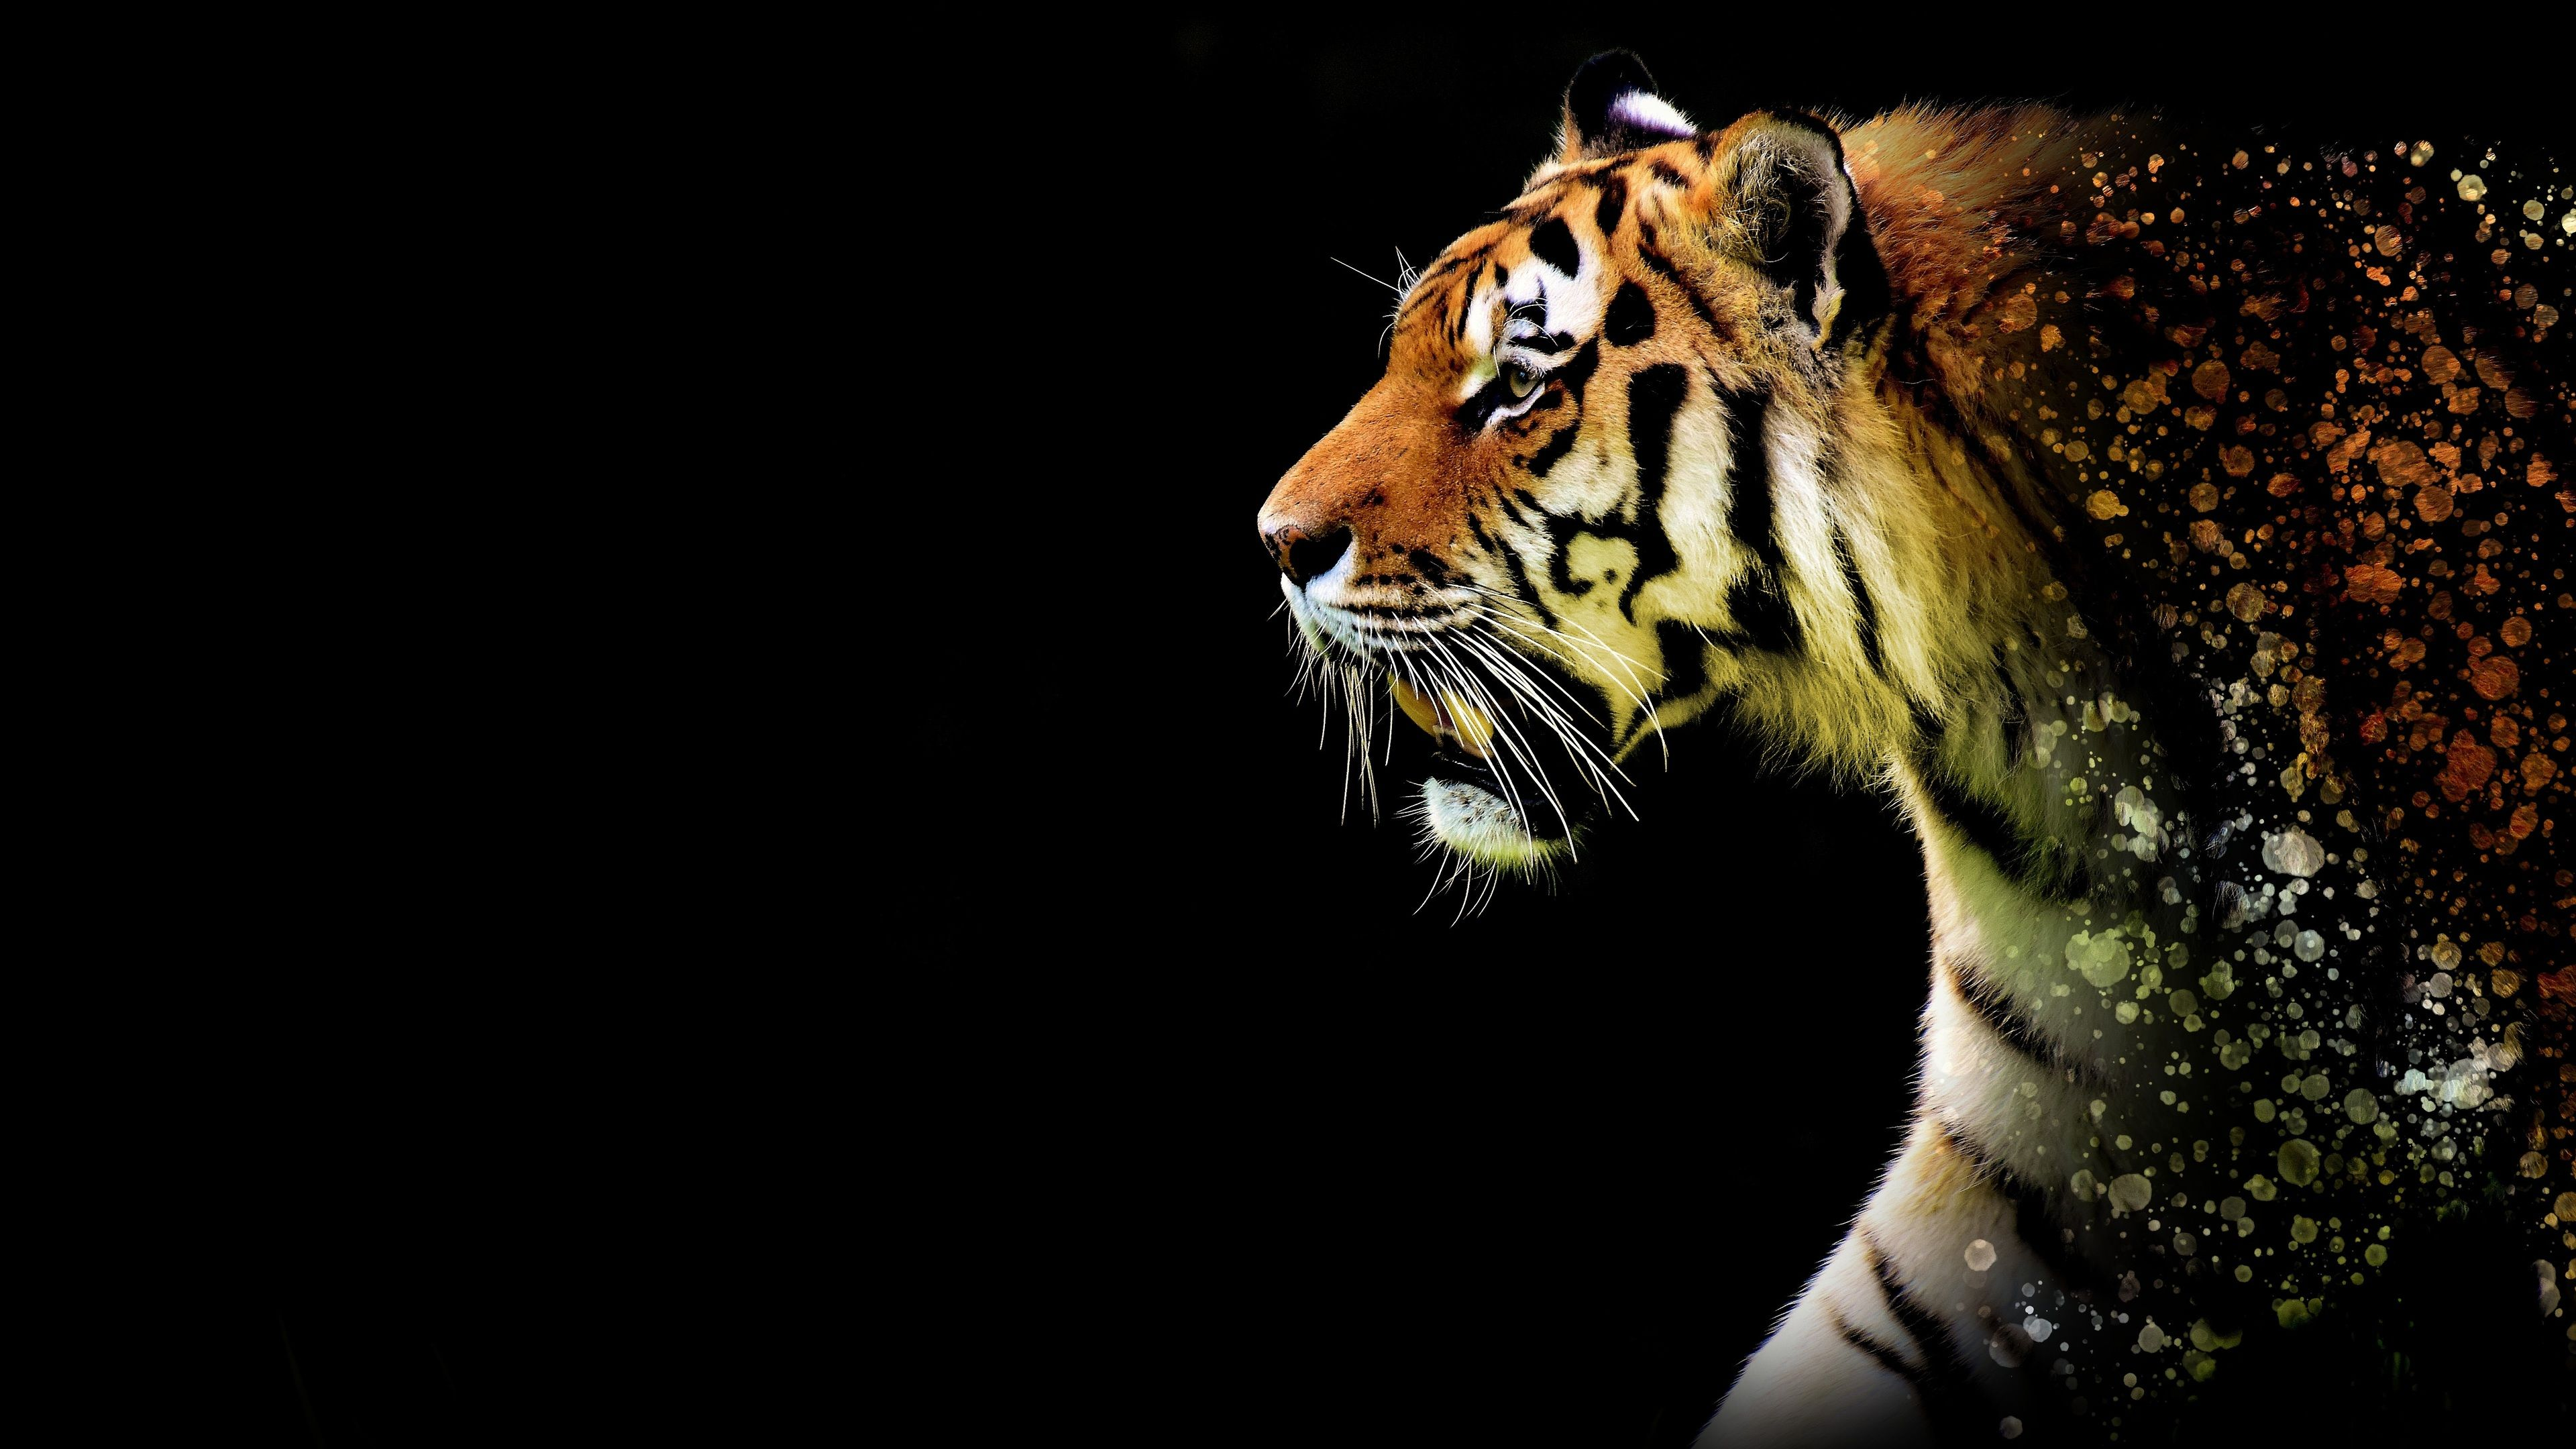 Tiger Abstract 4k Tiger Wallpapers Hd Wallpapers Artwork Wallpapers Animals Wallpapers Abstract Wa Animal Wallpaper Abstract Art Wallpaper Abstract Animals